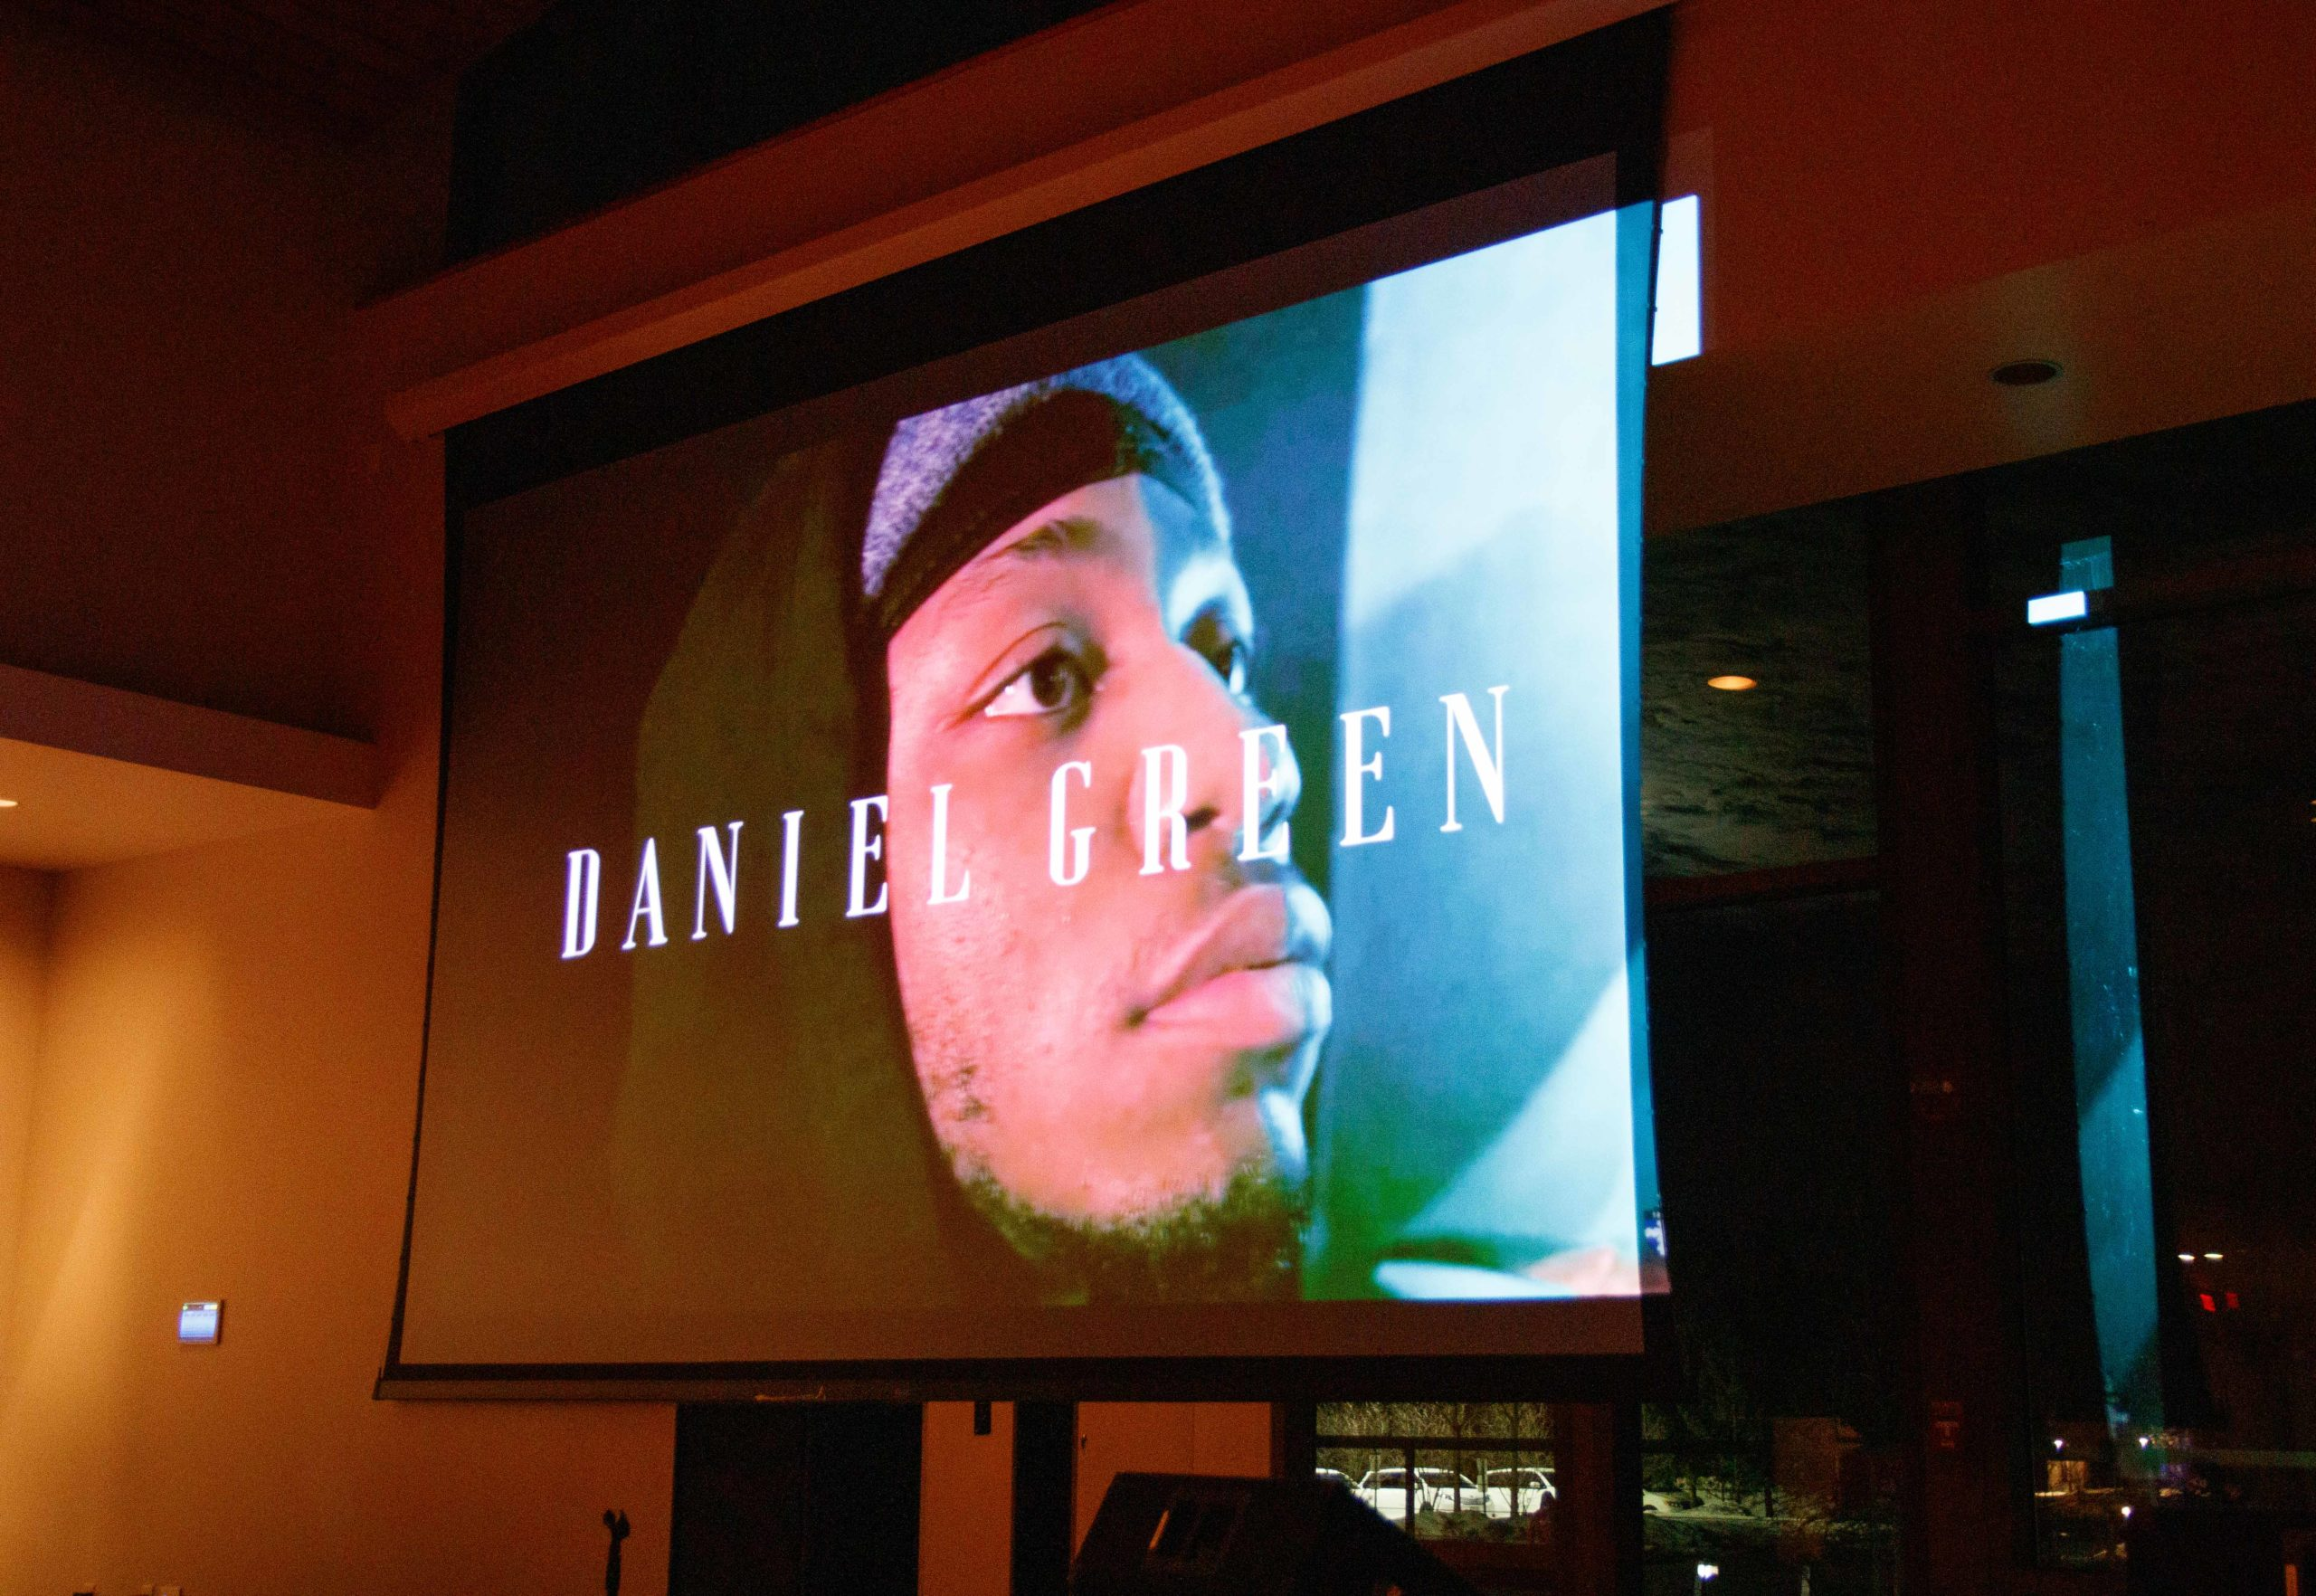 """Projection screen with he words """"DANIEL GREEN"""" on them and a young Black man behind the words"""